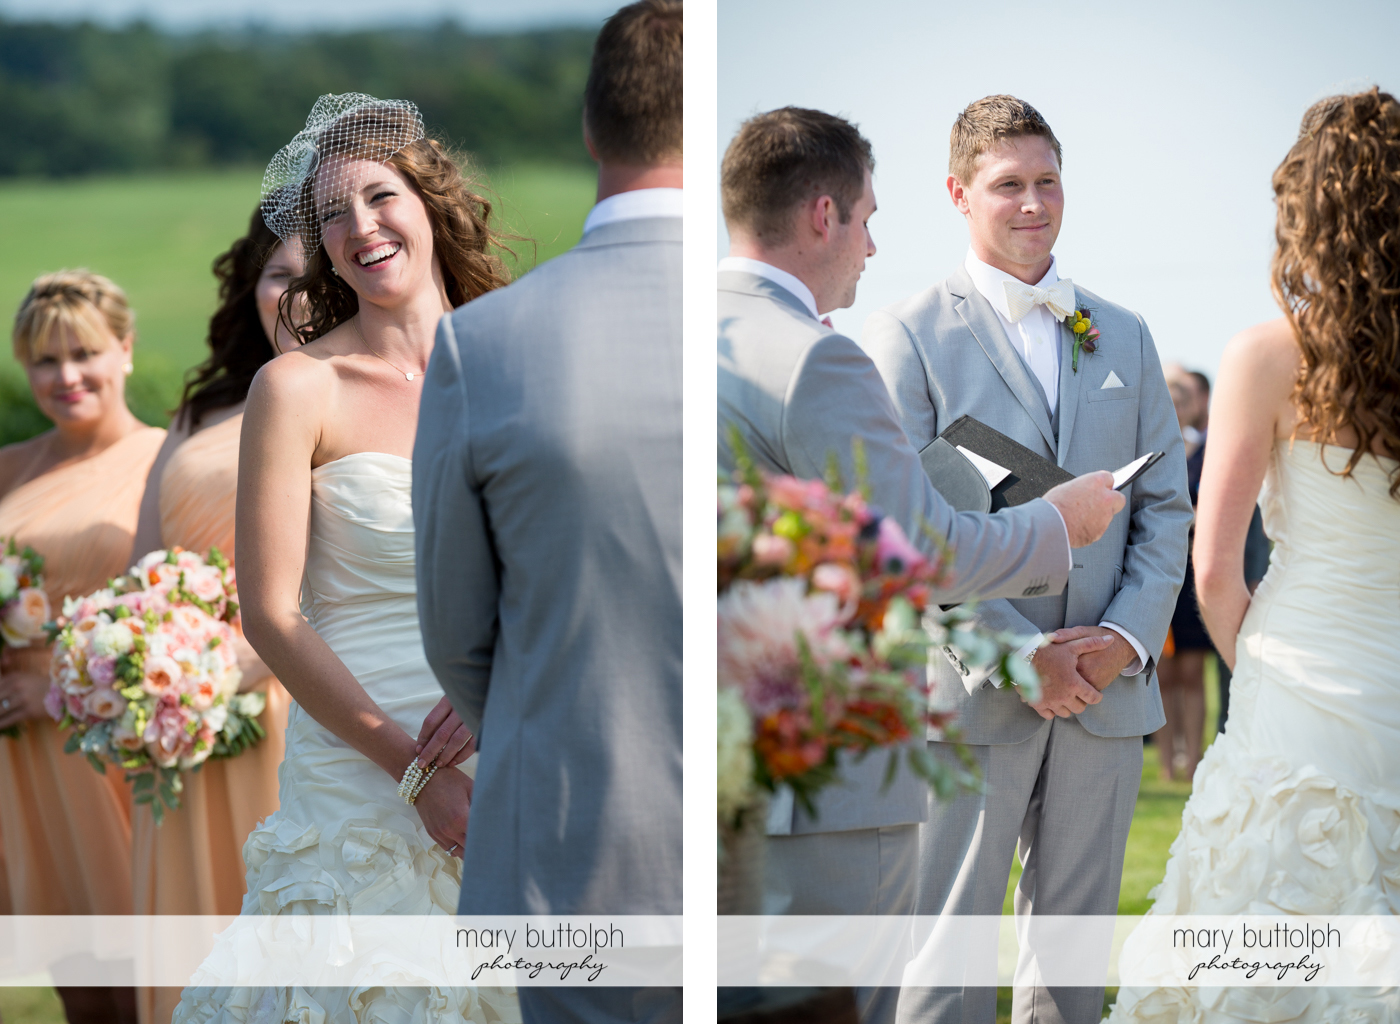 Happy bride and the smiling groom at the Inns of Aurora Wedding